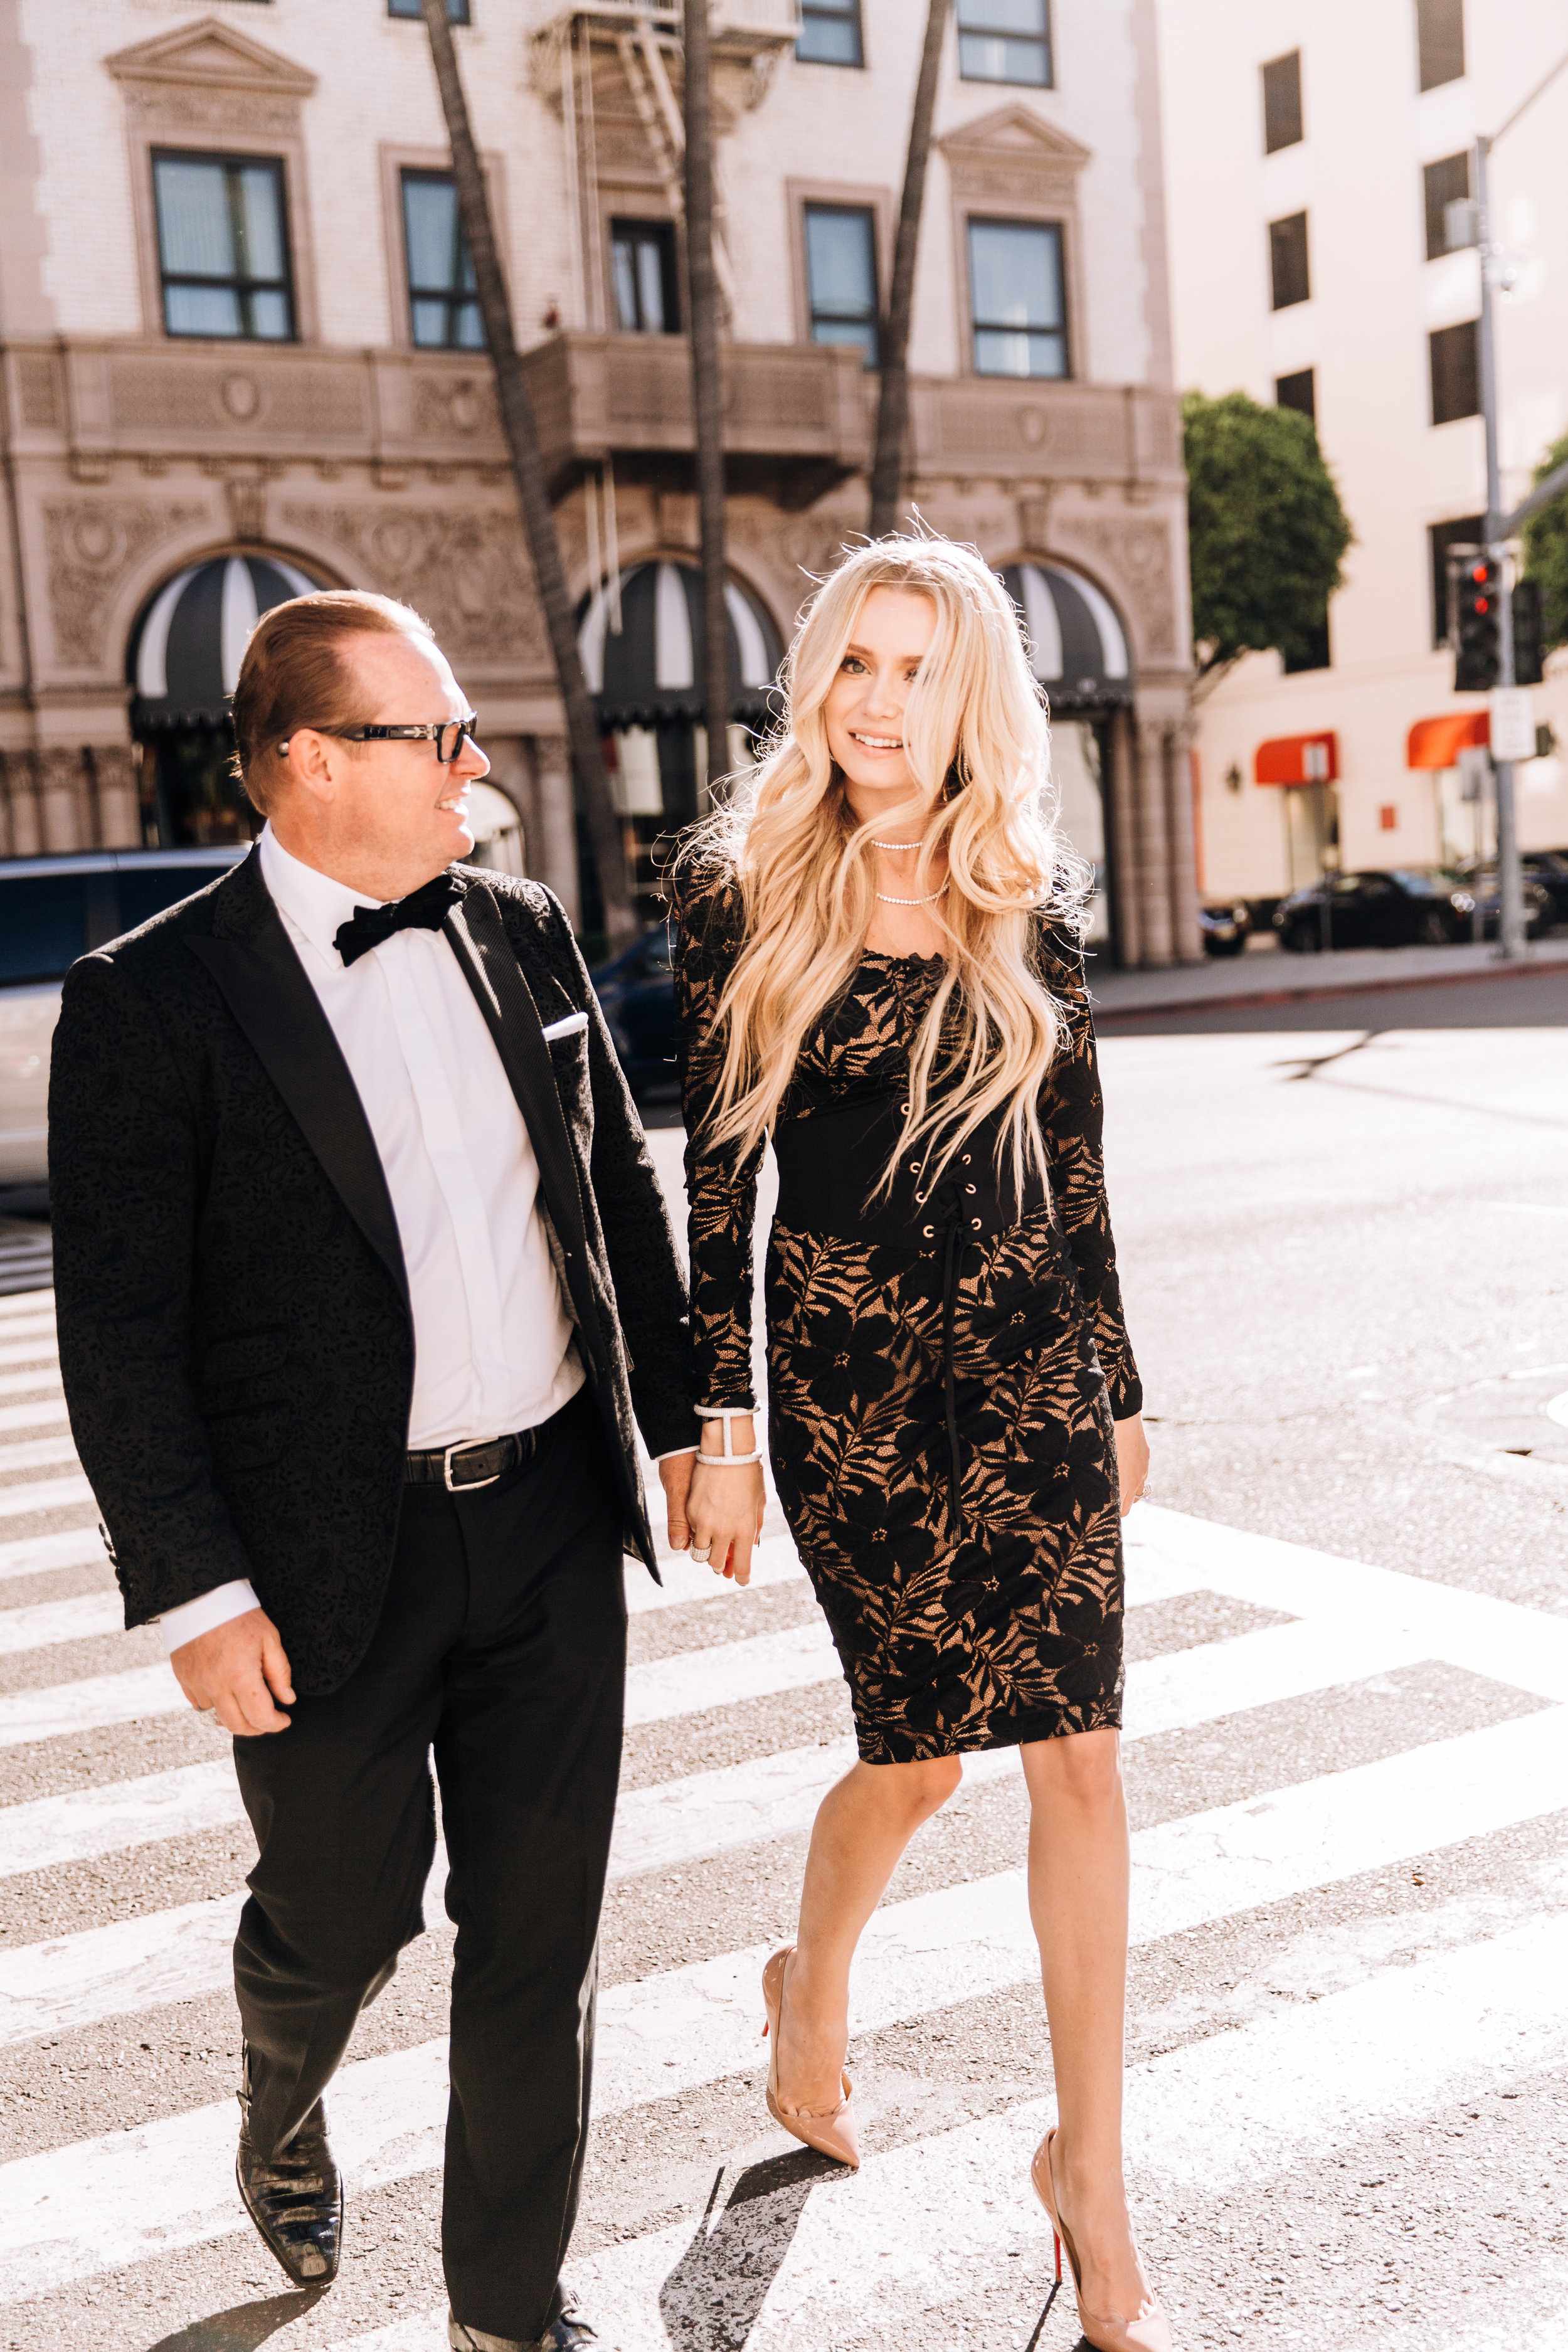 KaraNixonWeddings-BeverlyHills-RodeoDr-Engagement-16.jpg